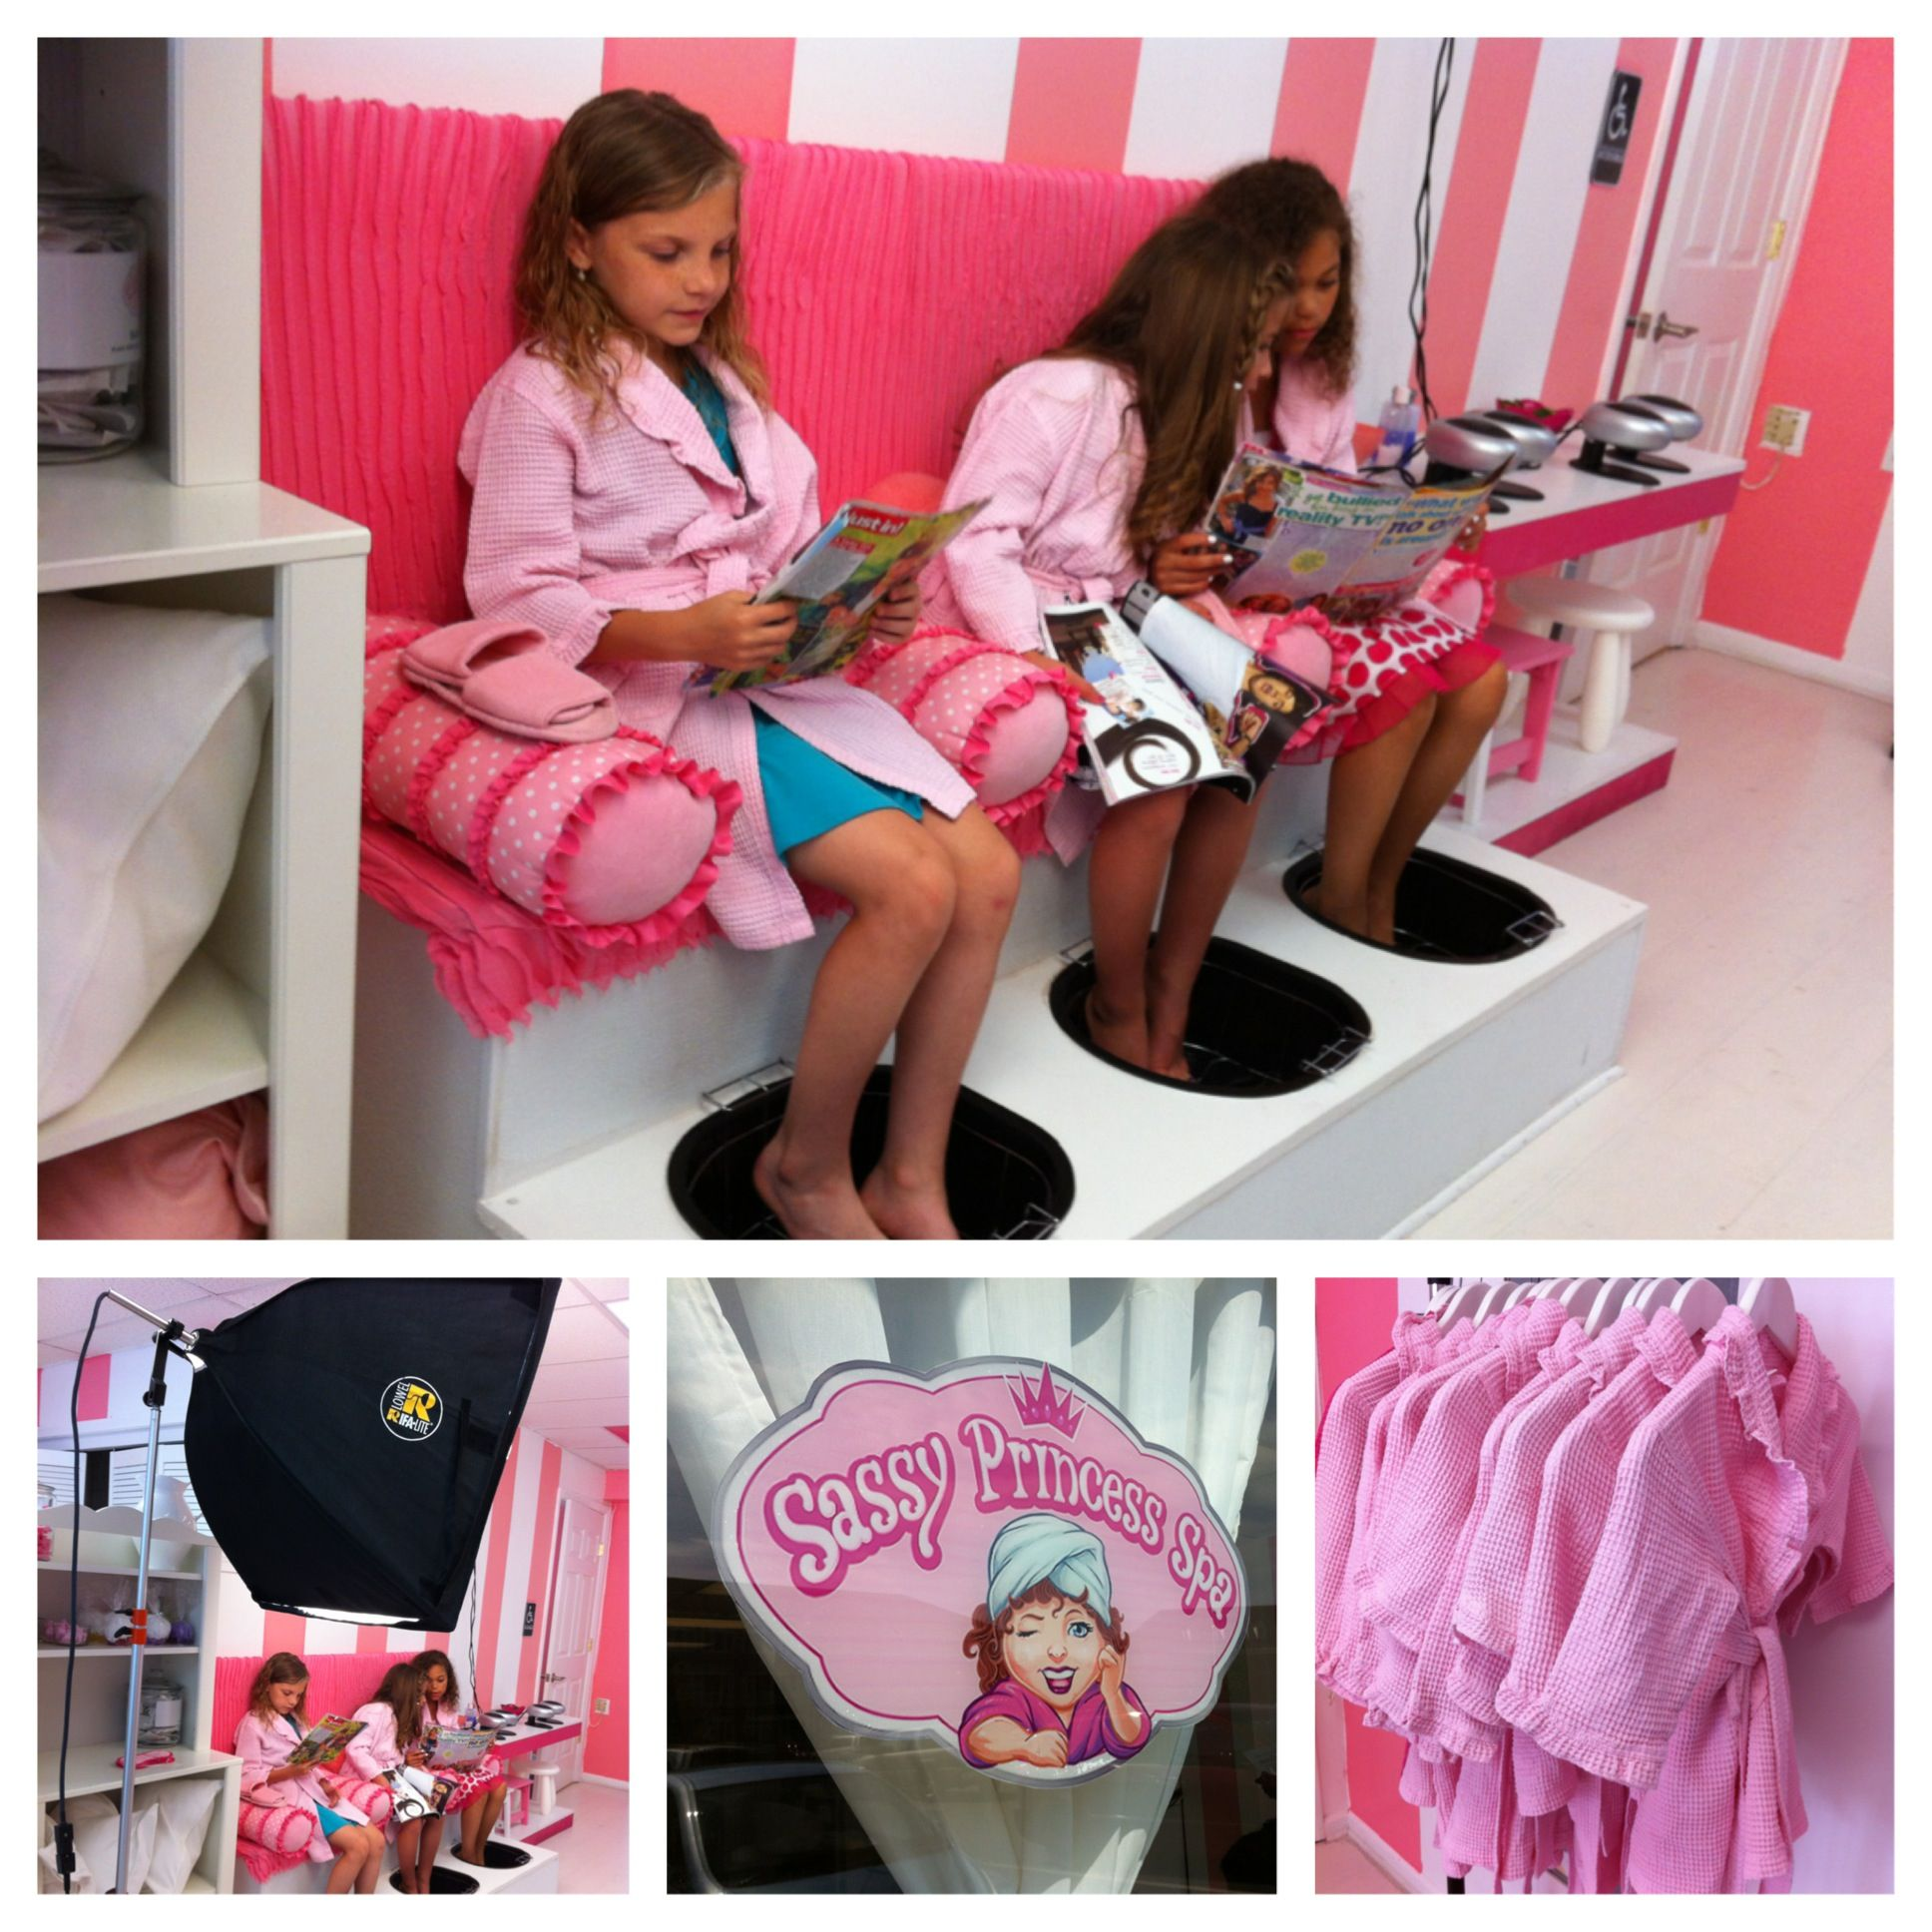 Nails Art Salon For Girls: Sassy Princess Spa For Girls Ages 3-13!